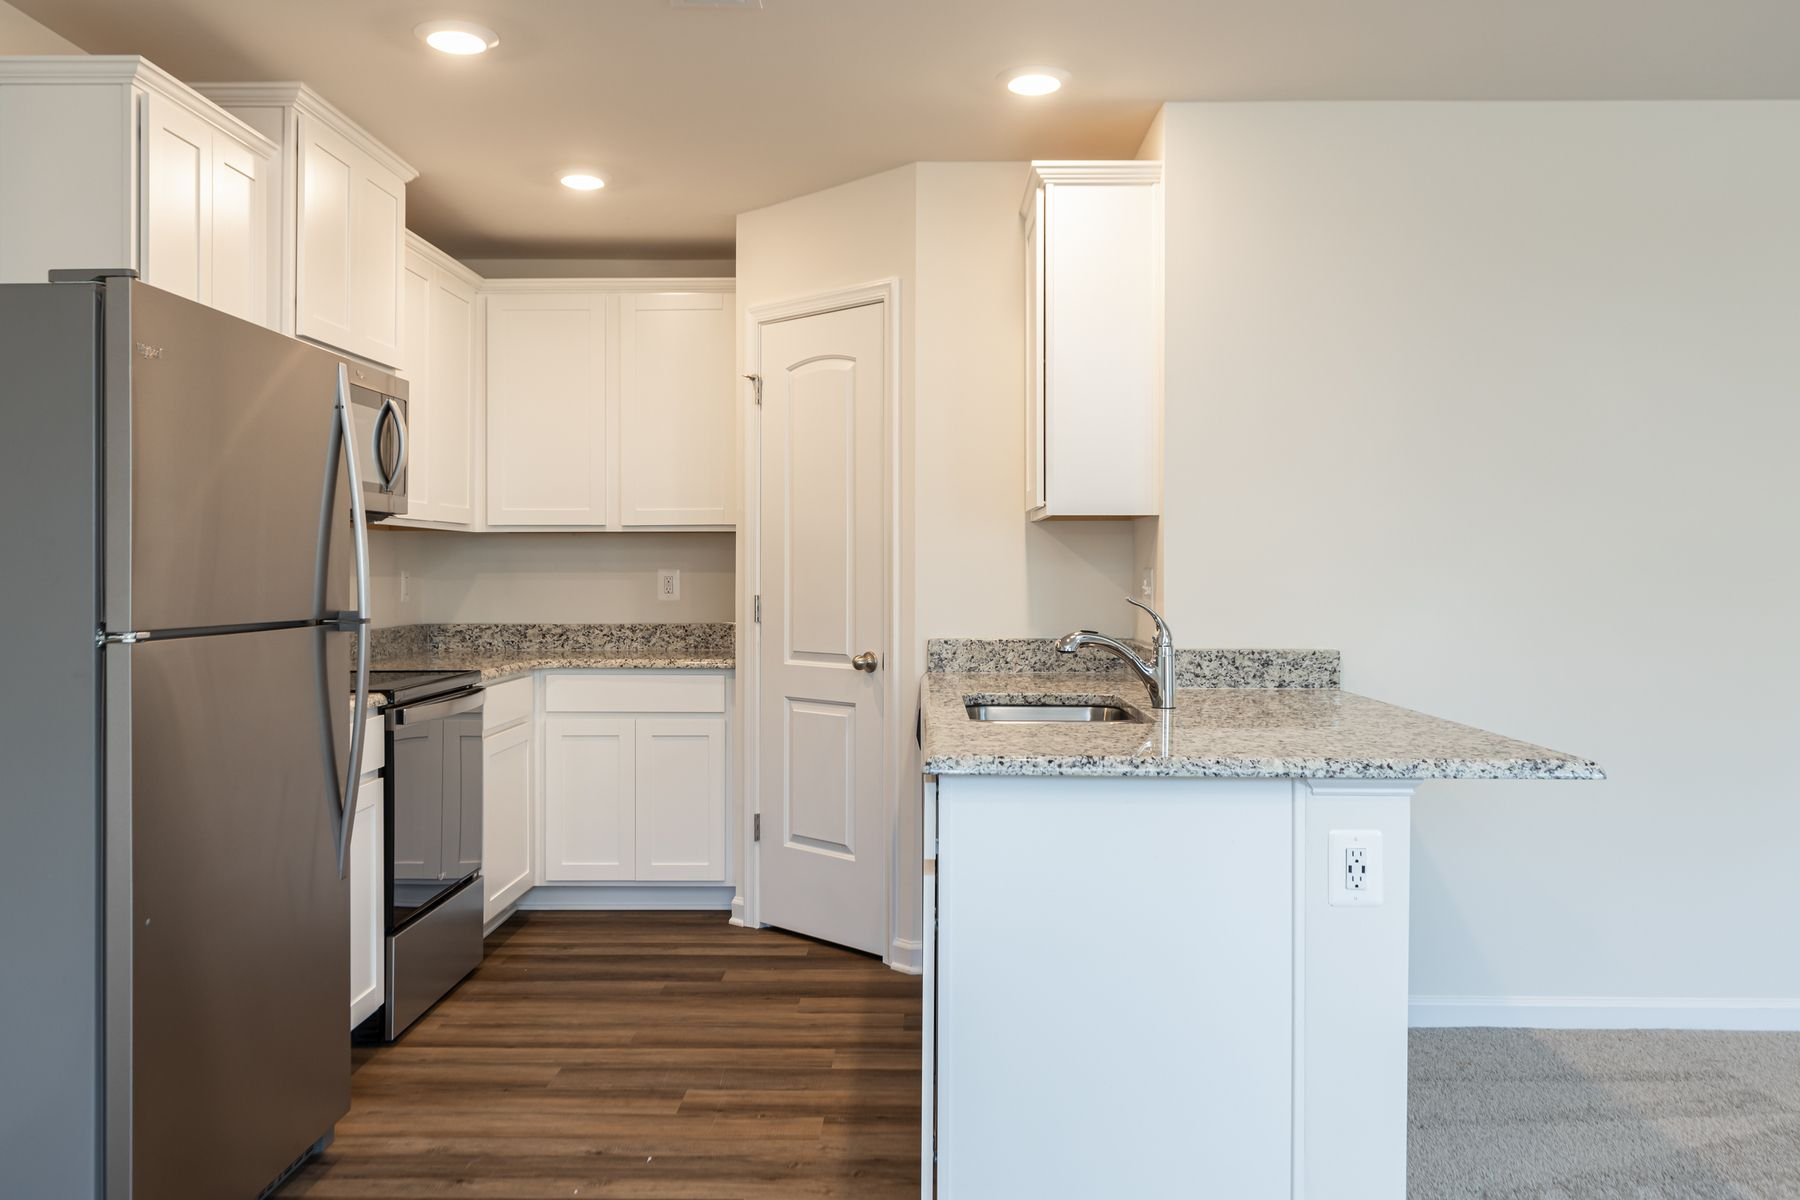 Kitchen featured in the Chatfield By LGI Homes in York, PA